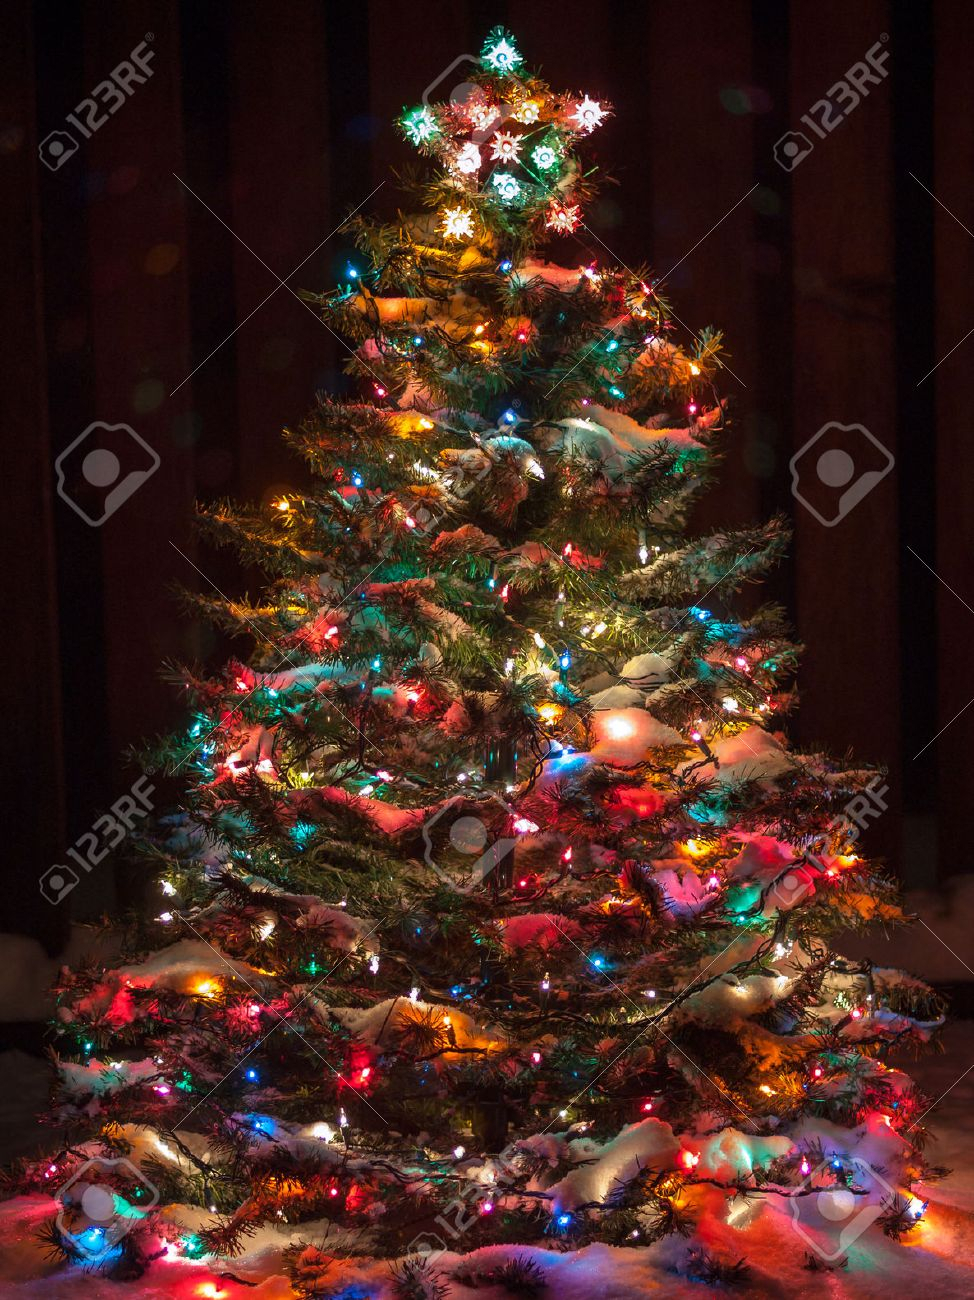 10 Elegant Christmas Tree Decorating Ideas With Multi Colored Lights snow covered christmas tree with multi colored lights stock photo 2021